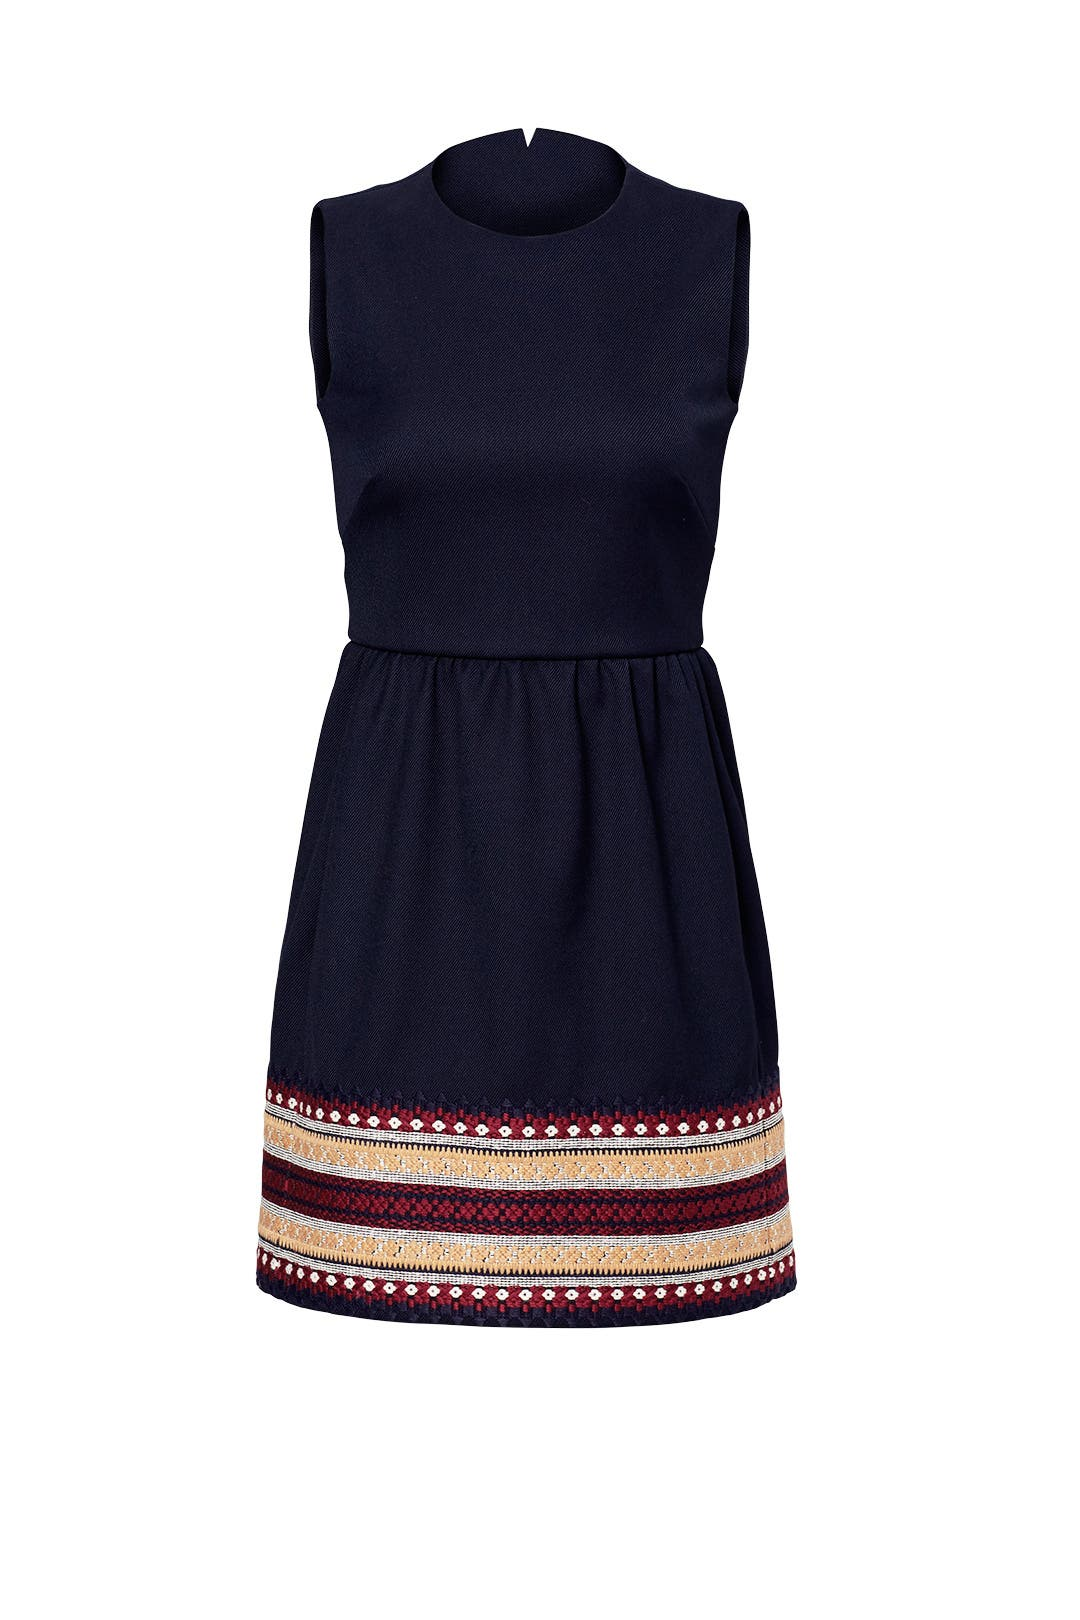 Dress for Women, Evening Cocktail Party On Sale, Red Valentino, Cobalt, Silk, 2017, 10 8 Valentino